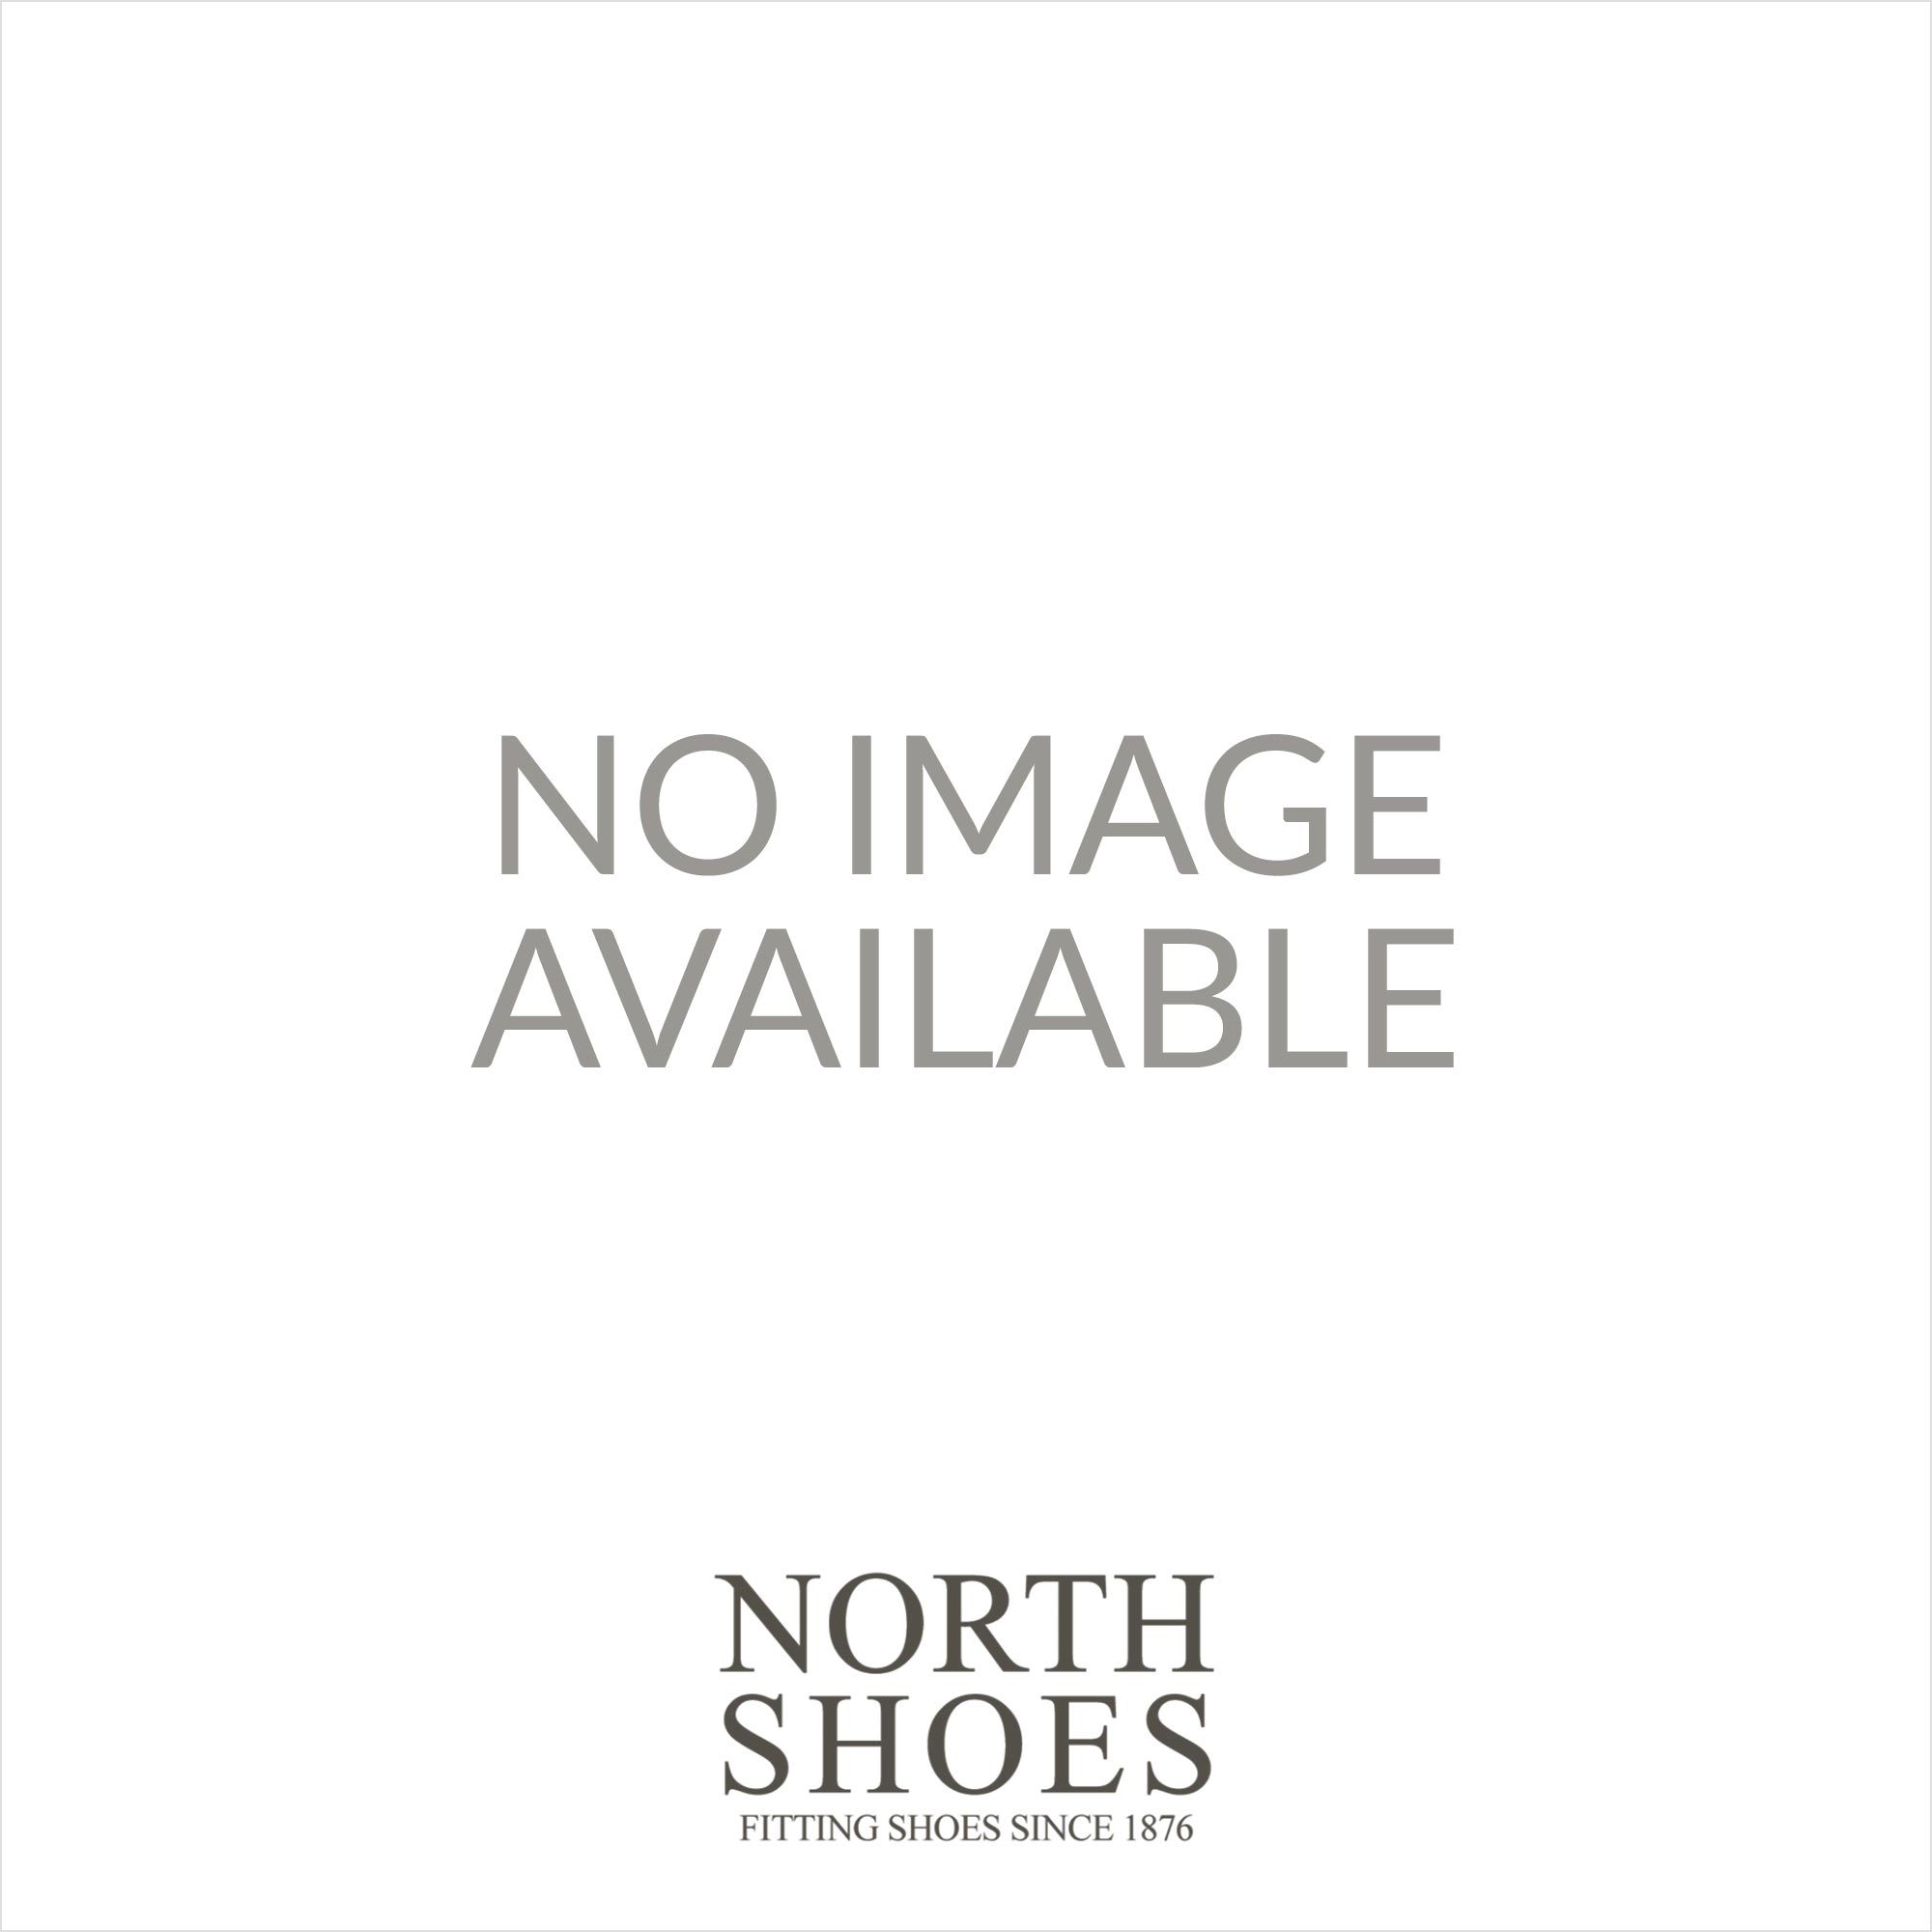 Girls DREW STAR Black Patent Leather Lace Up School Shoes By Clarks SALE £29.99